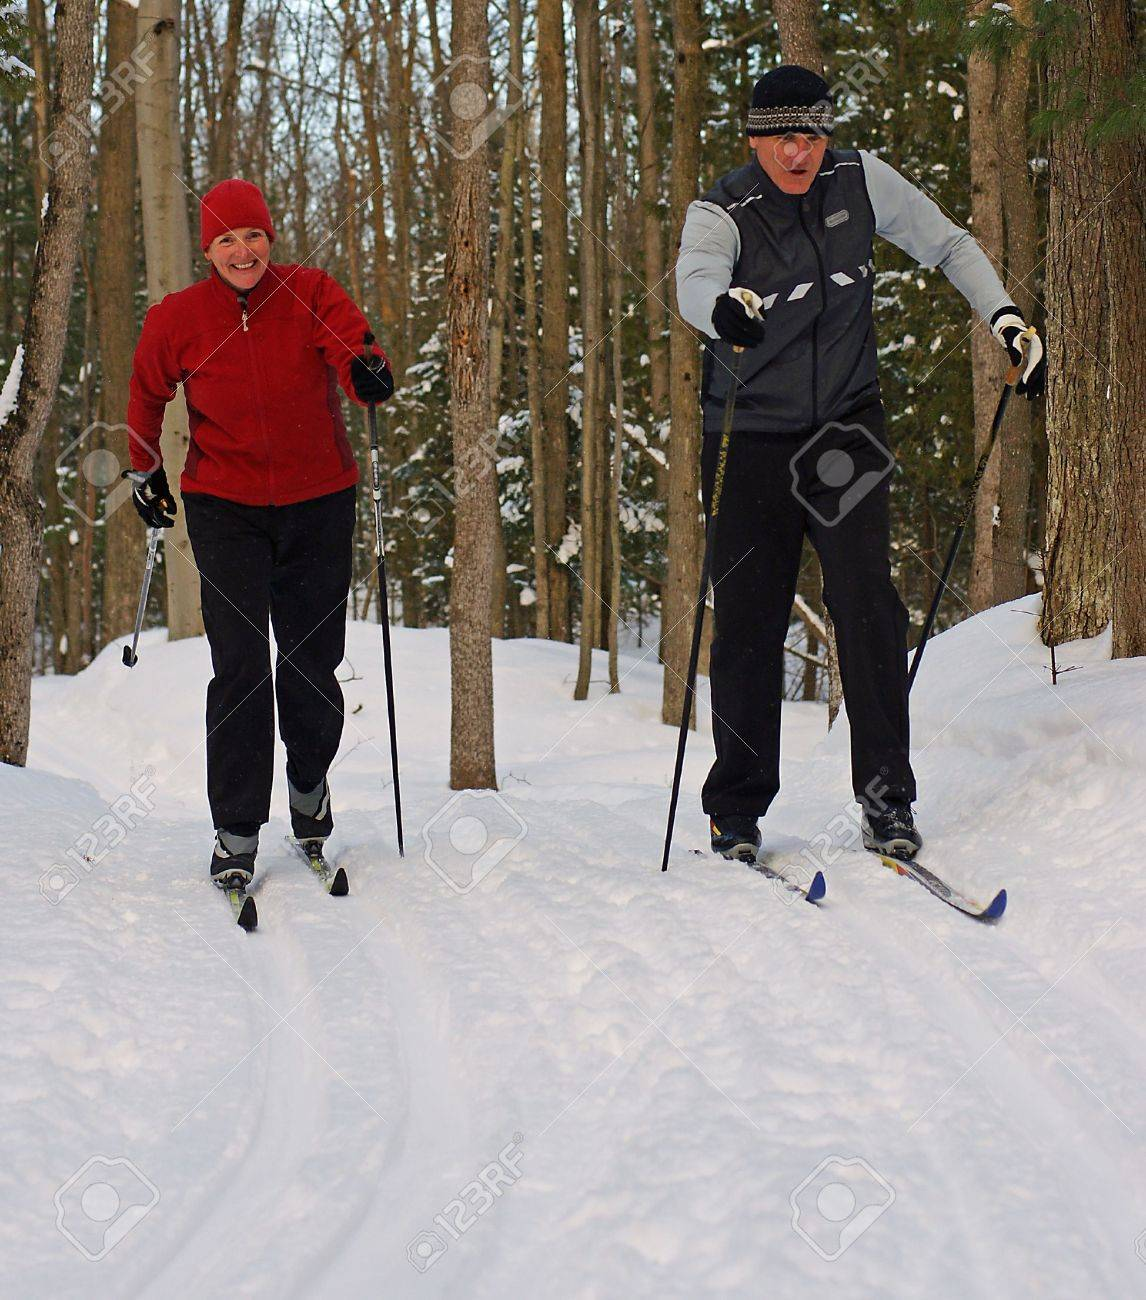 Couple on Nordic Skis in Canadian Forest - 4123717